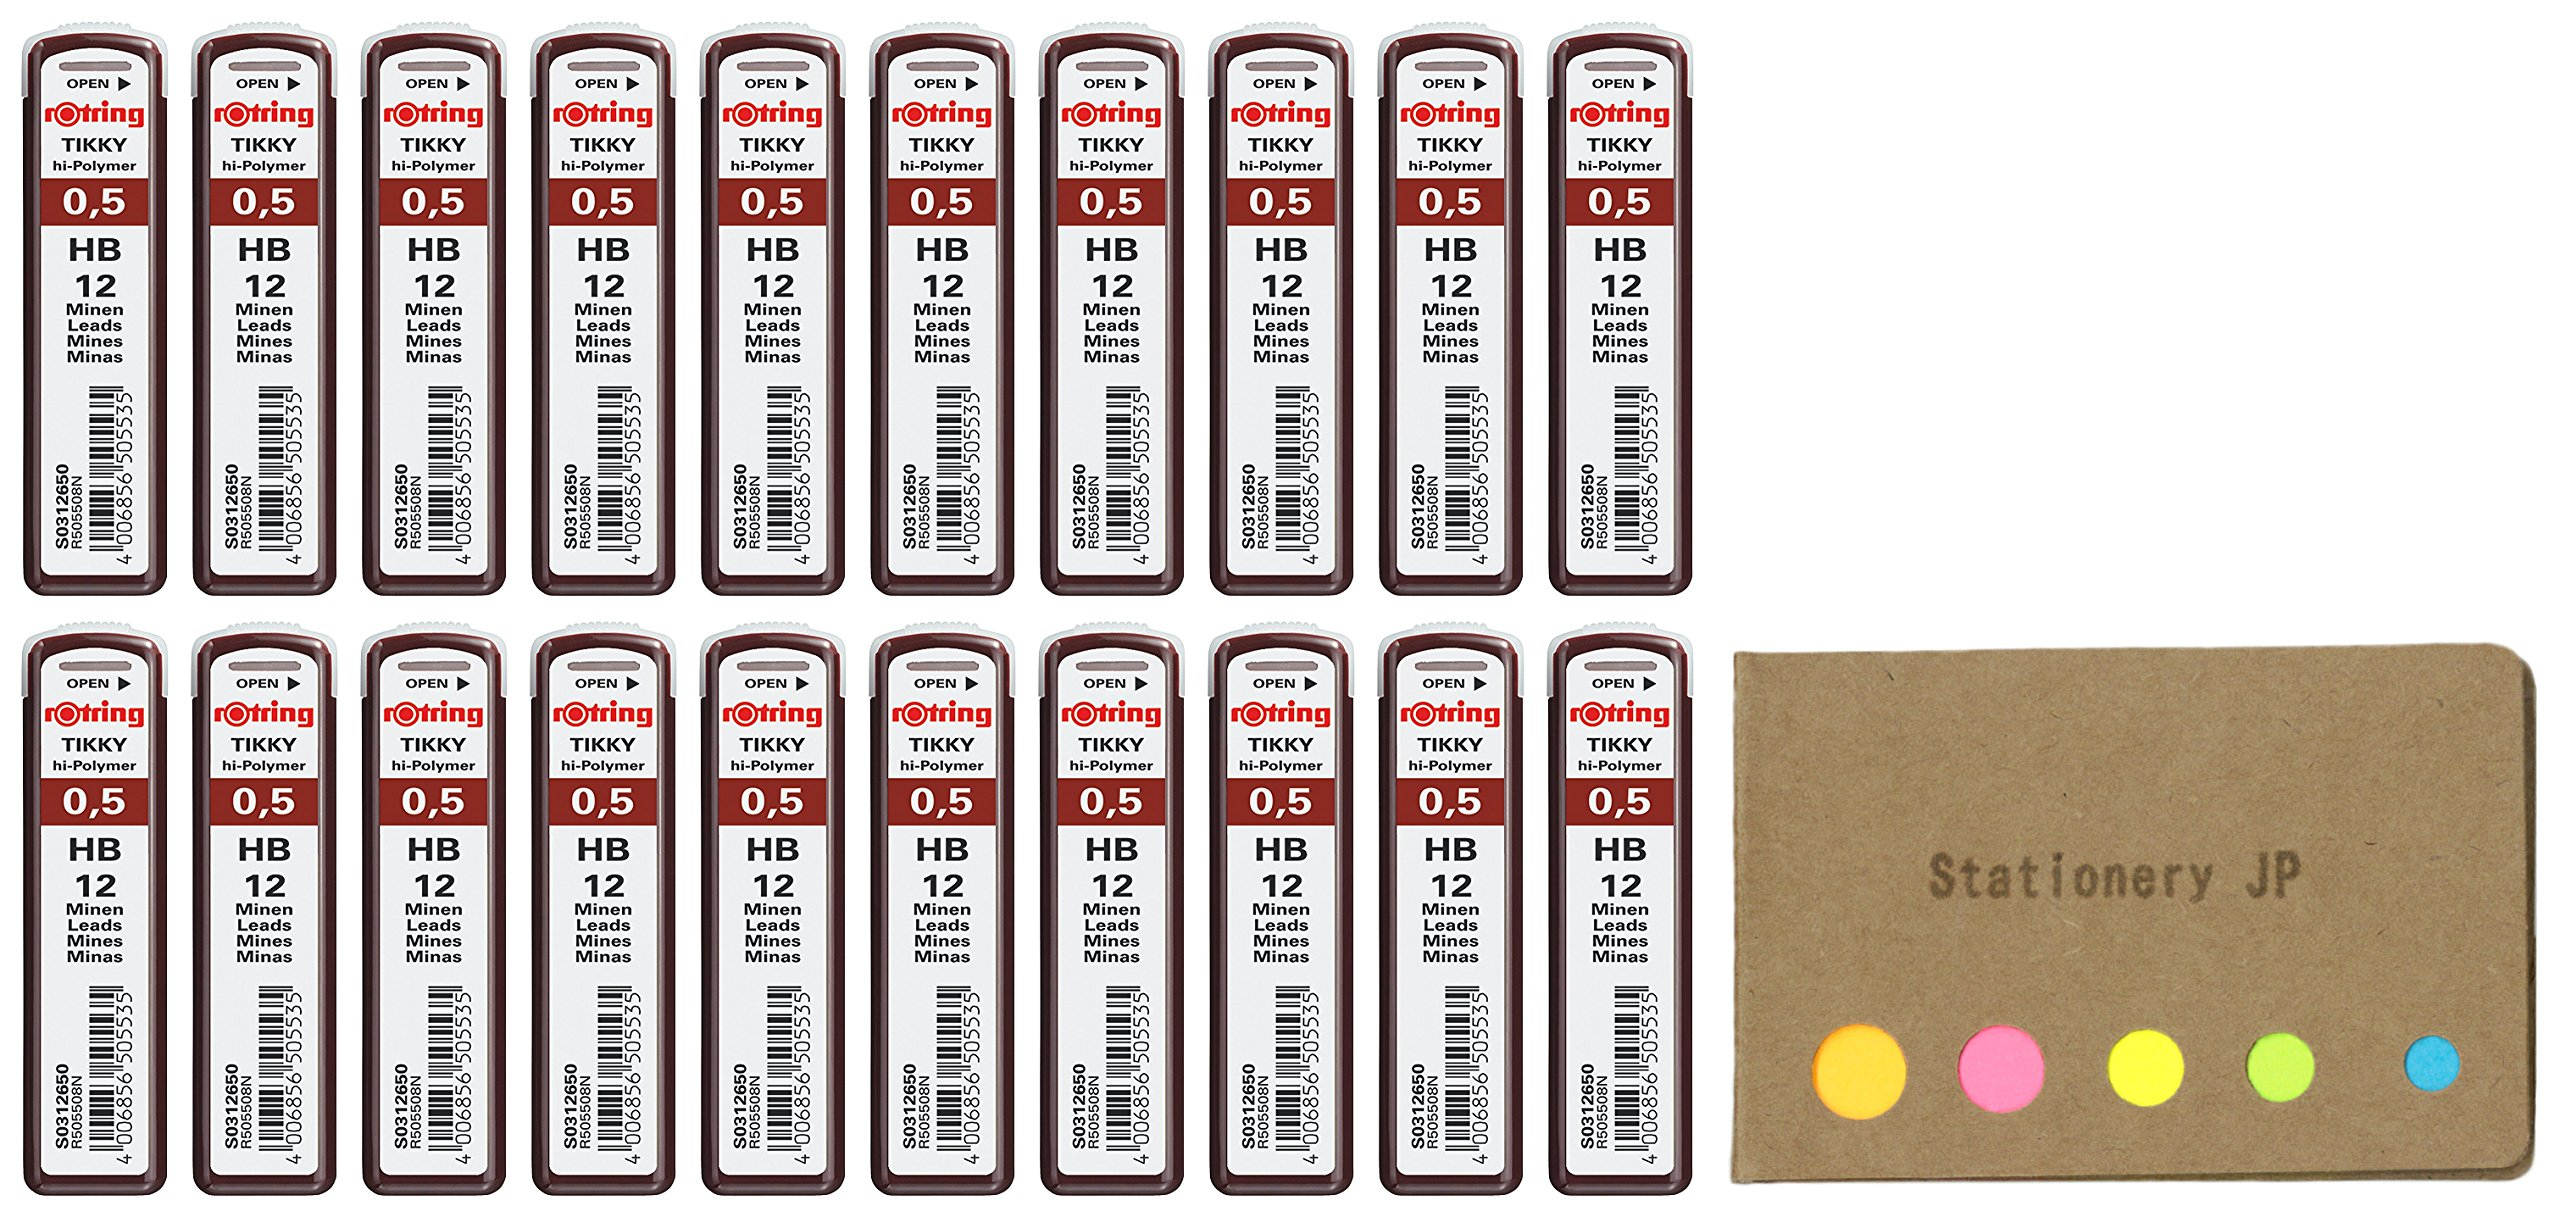 Rotring Tikky Mechanical Pencil Leads 0.5mm HB, 20 Pack/total 240, Sticky Notes Value Set by Stationery JP (Image #1)